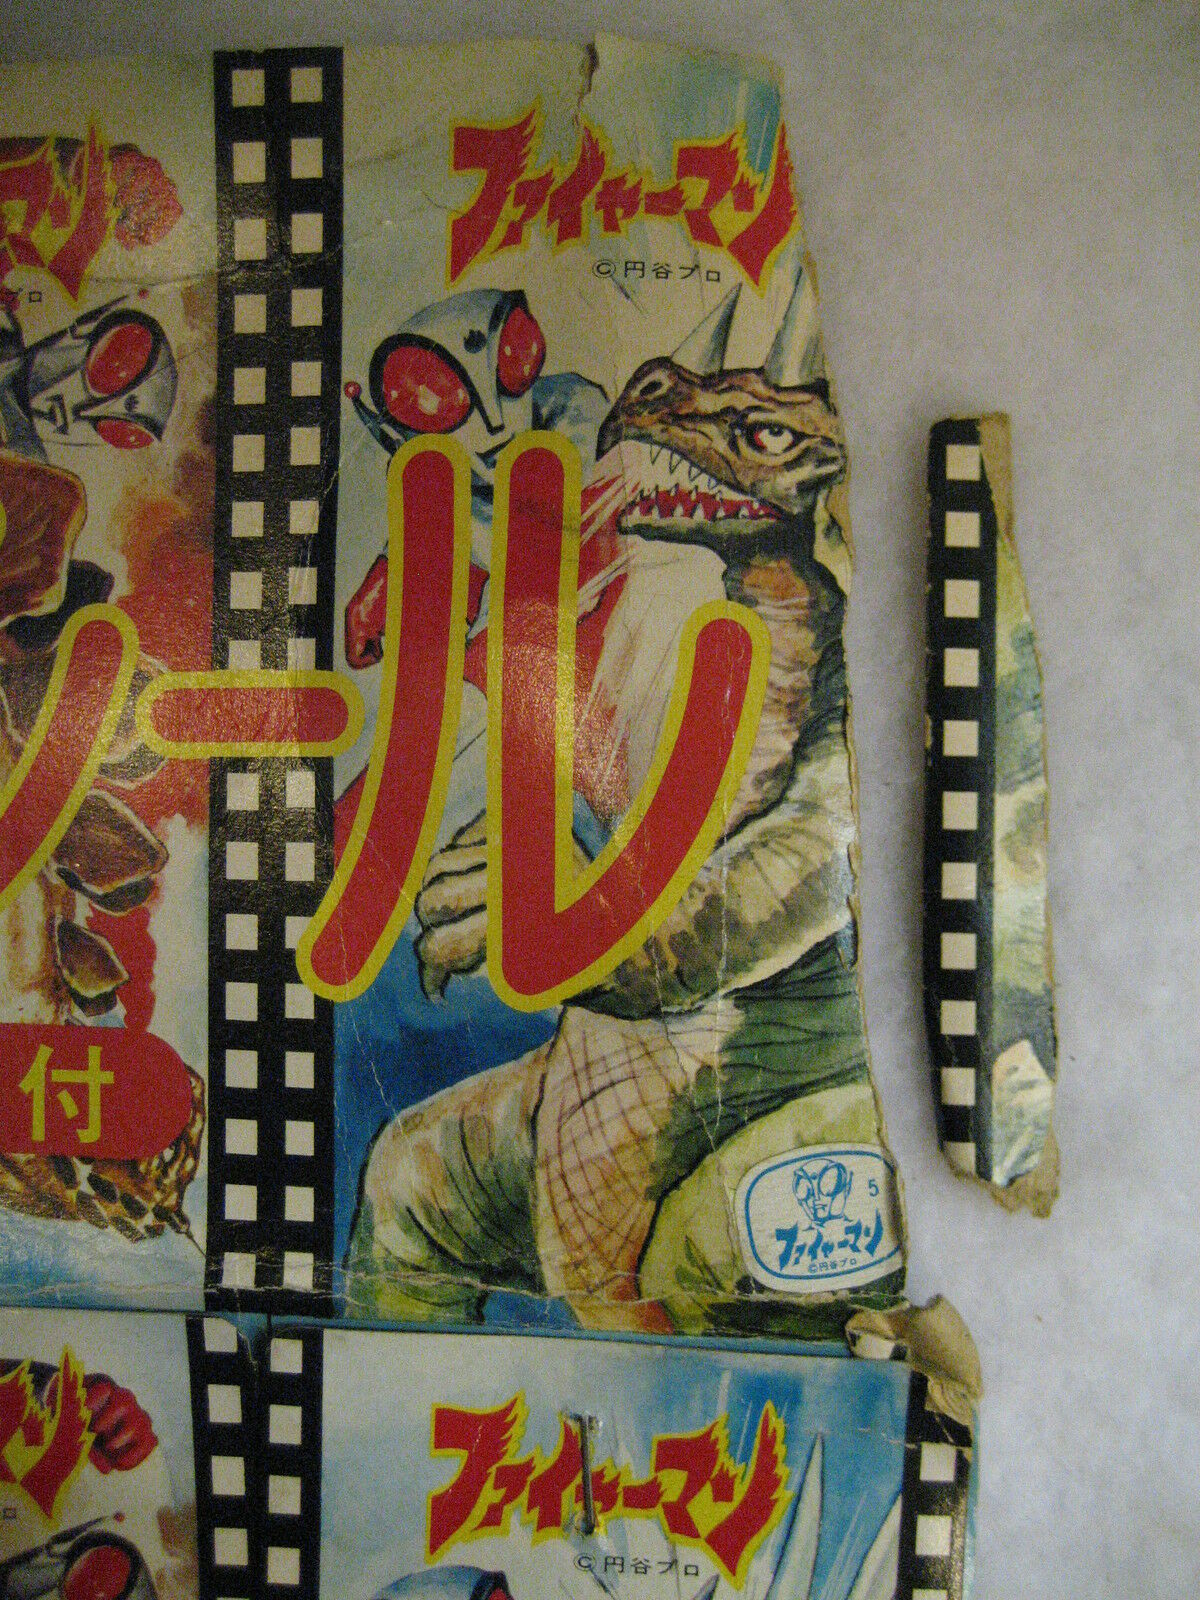 RARE vintage Japanese FIREMAN tape STORE STORE STORE DISPLAY Japan Fire Man kaiju RARE item 289023